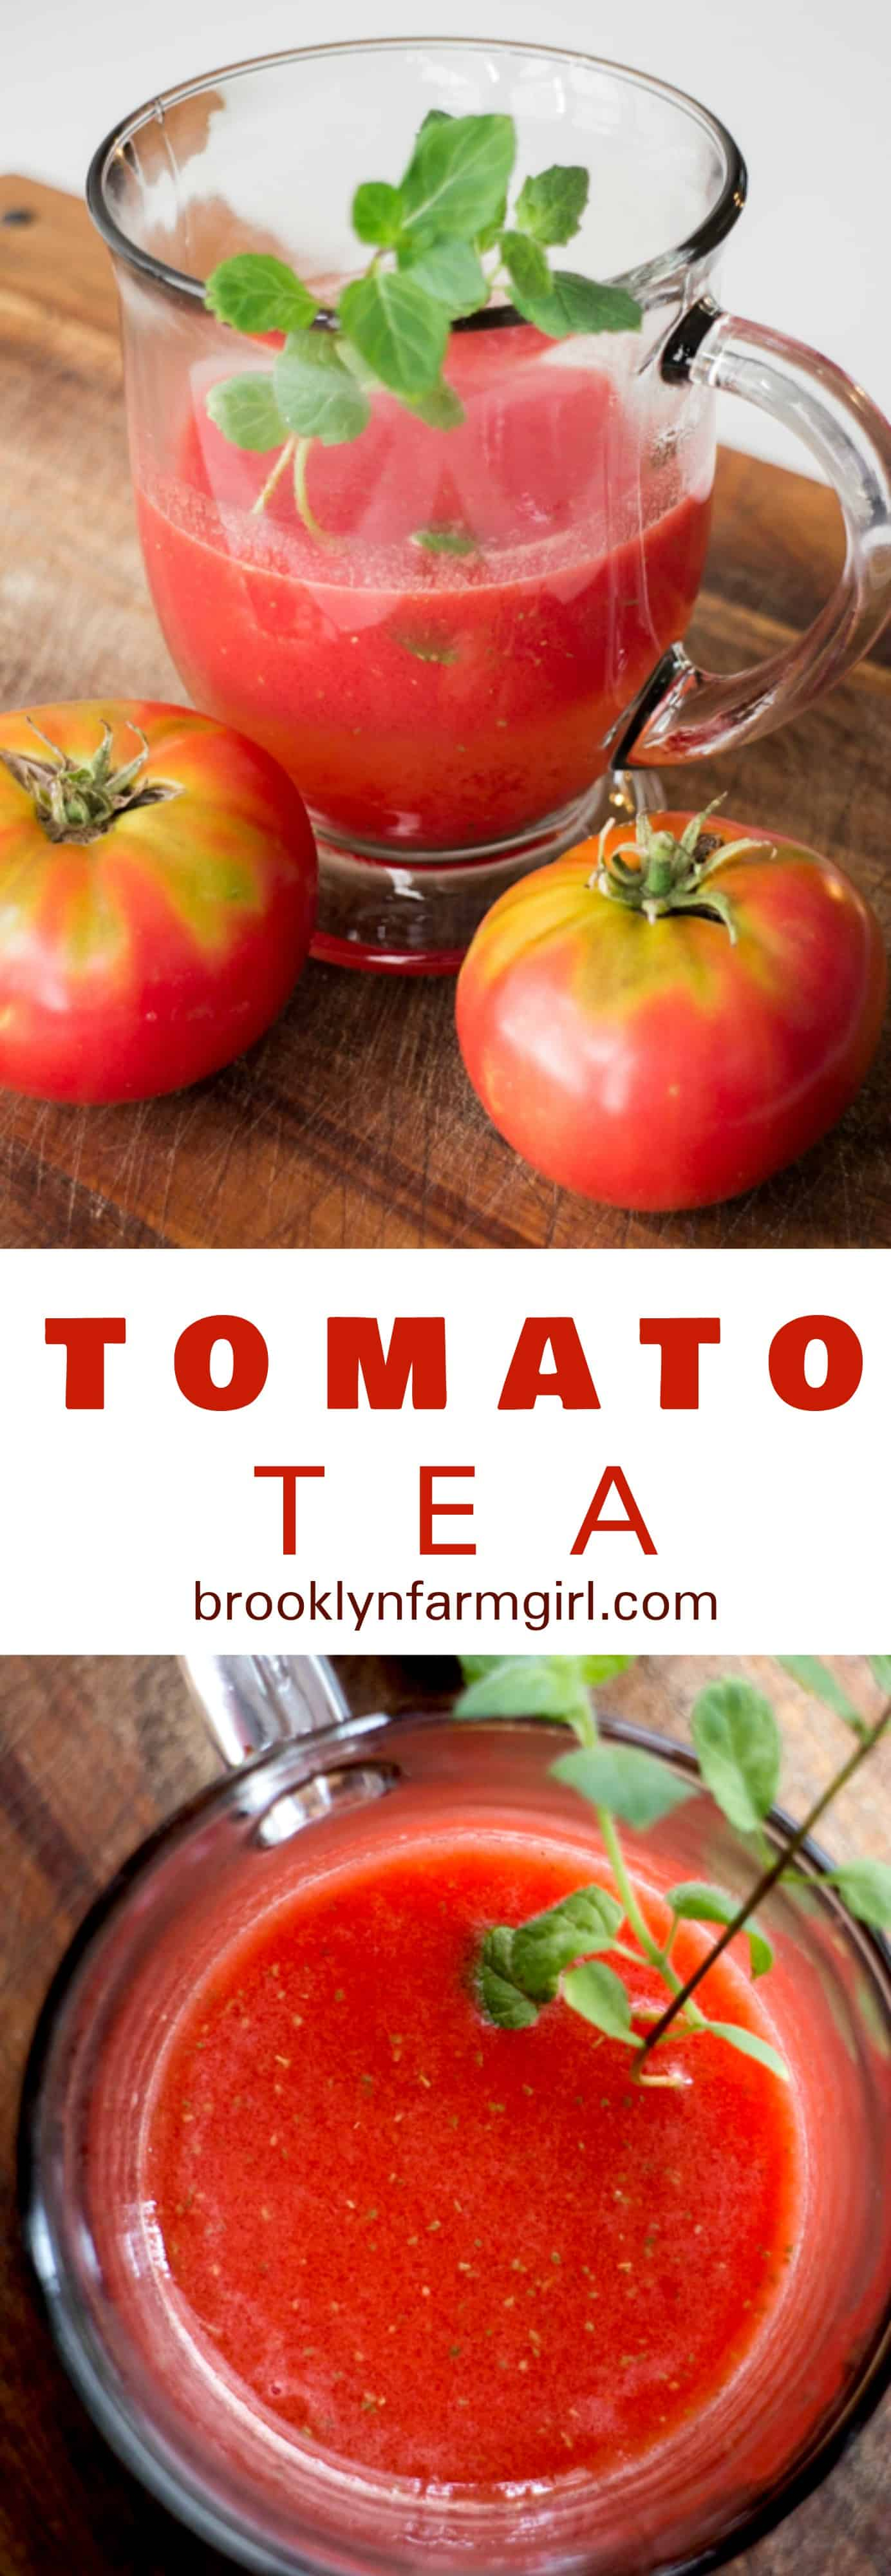 HEALTHY Tomato Tea recipe that is made with 2 ingredients! This easy homemade tomato tea can be served hot or cold and is filled with many health benefits! Whenever my skin is acting up with acne, I drink a cup of this in the afternoon!